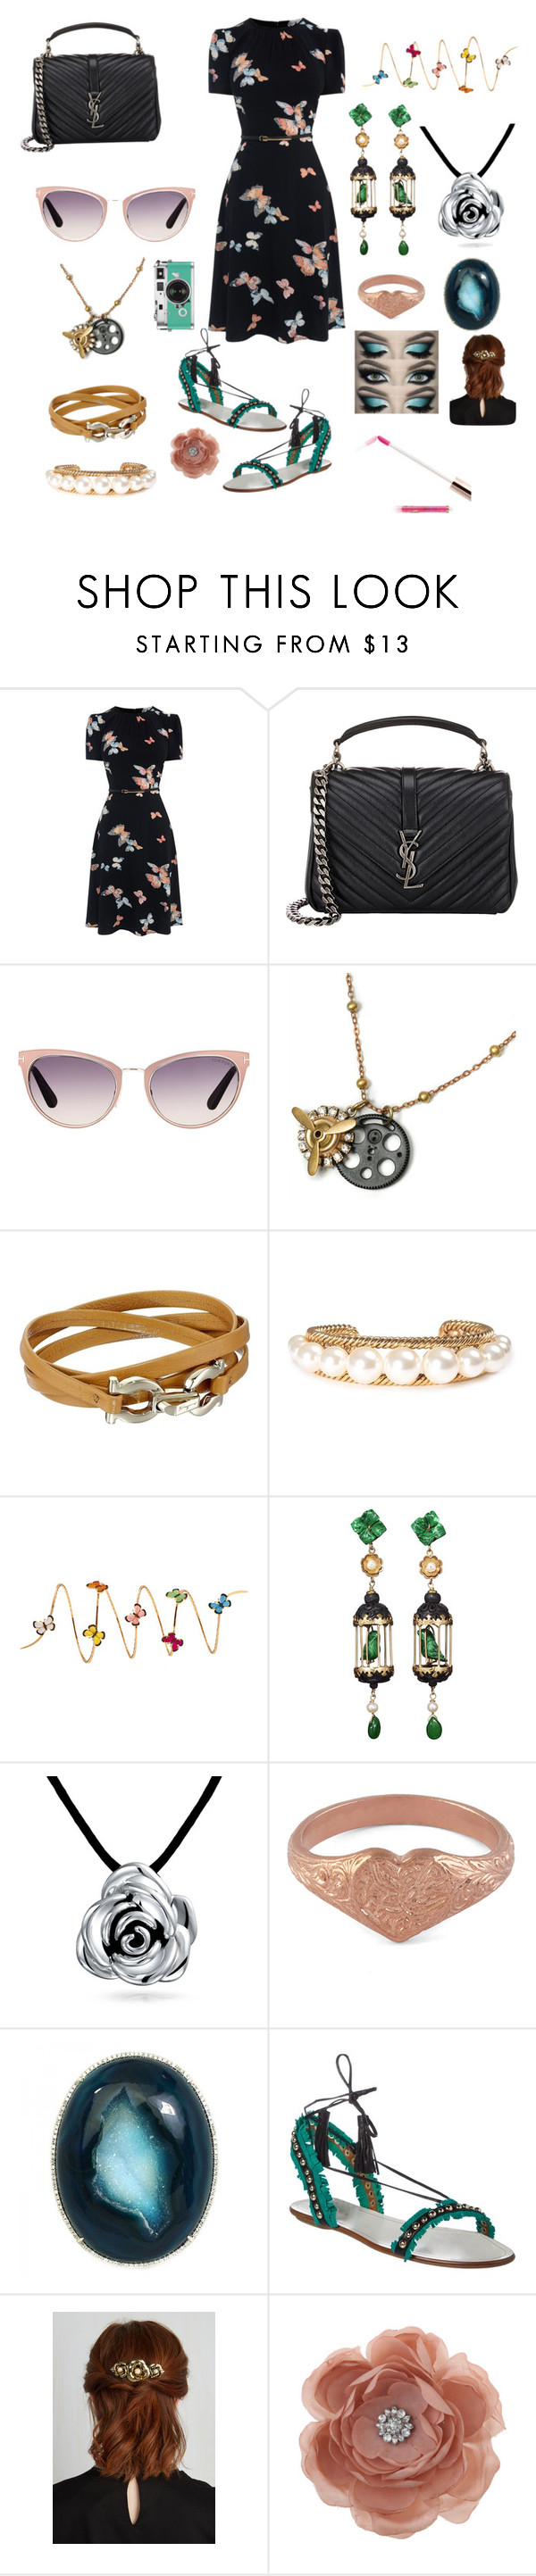 """"""""""" by karabear3256 ❤ liked on Polyvore featuring Yves Saint Laurent, Tom Ford, Sweet Romance, Salvatore Ferragamo, Marc Jacobs, Christina Debs, Of Rare Origin, Bling Jewelry, Alex Monroe and Aquazzura"""